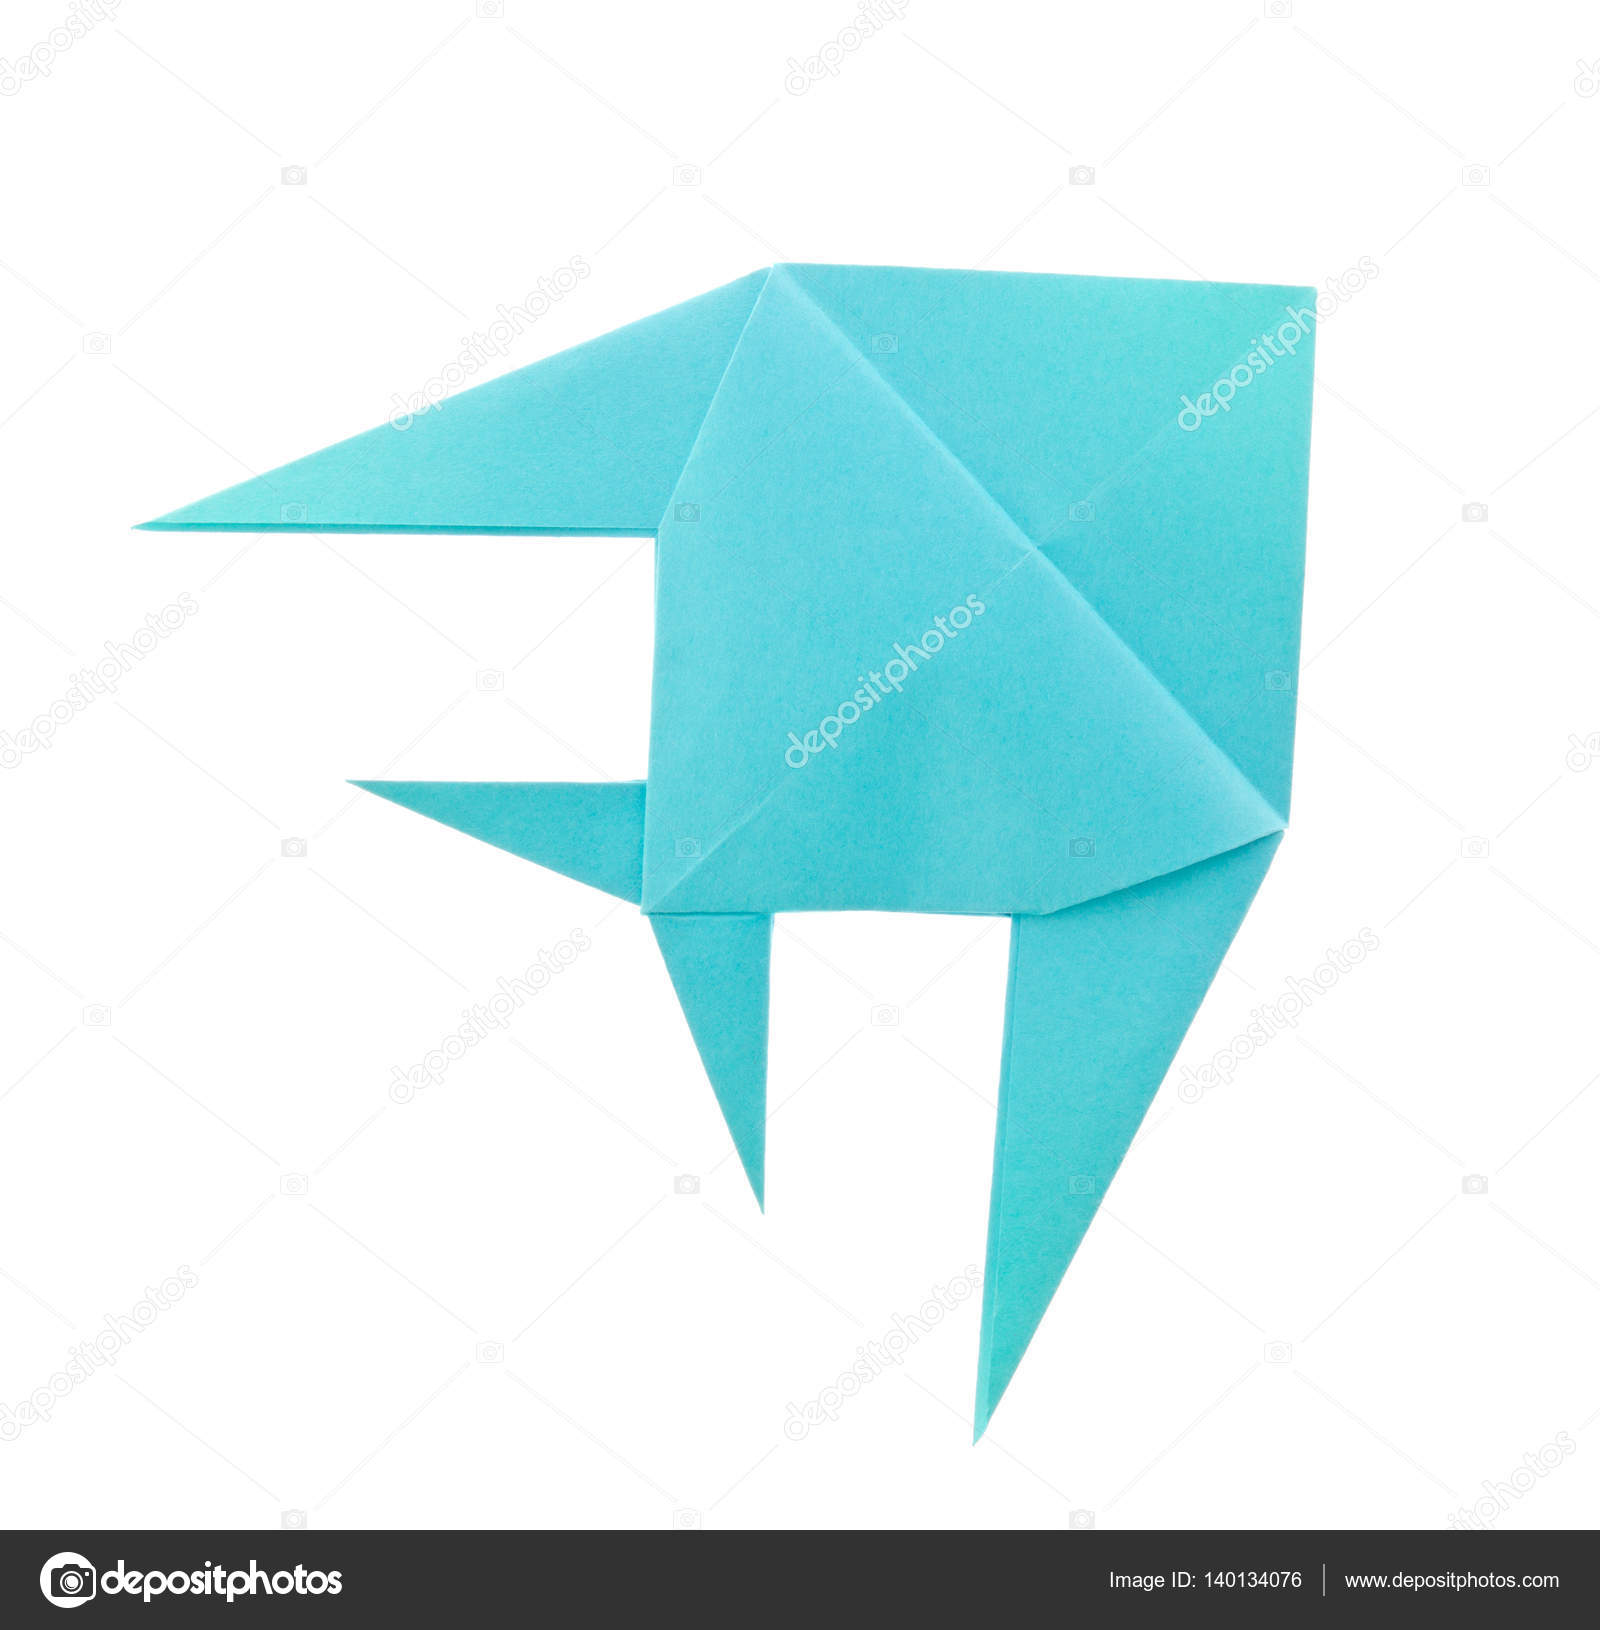 Blue tropical fish of origami stock photo brulove 140134076 blue tropical fish of origami stock photo jeuxipadfo Images